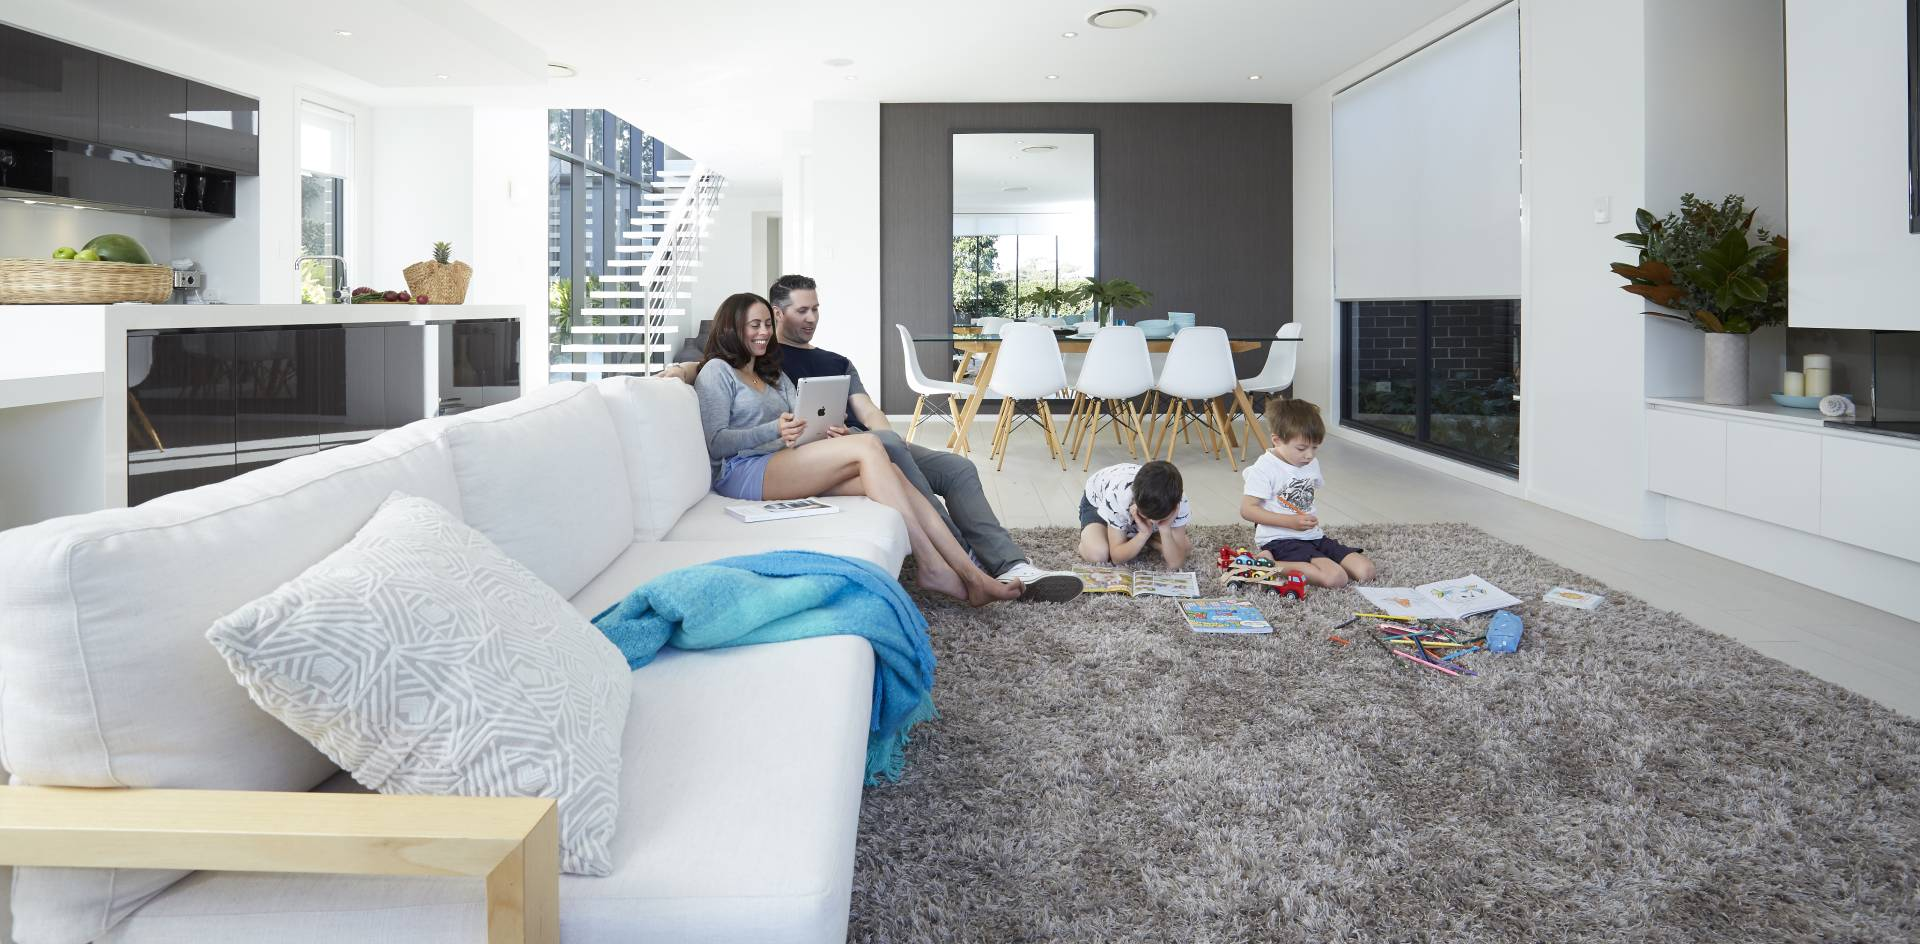 A family of four enjoy their Daikin air conditioning system in their home.